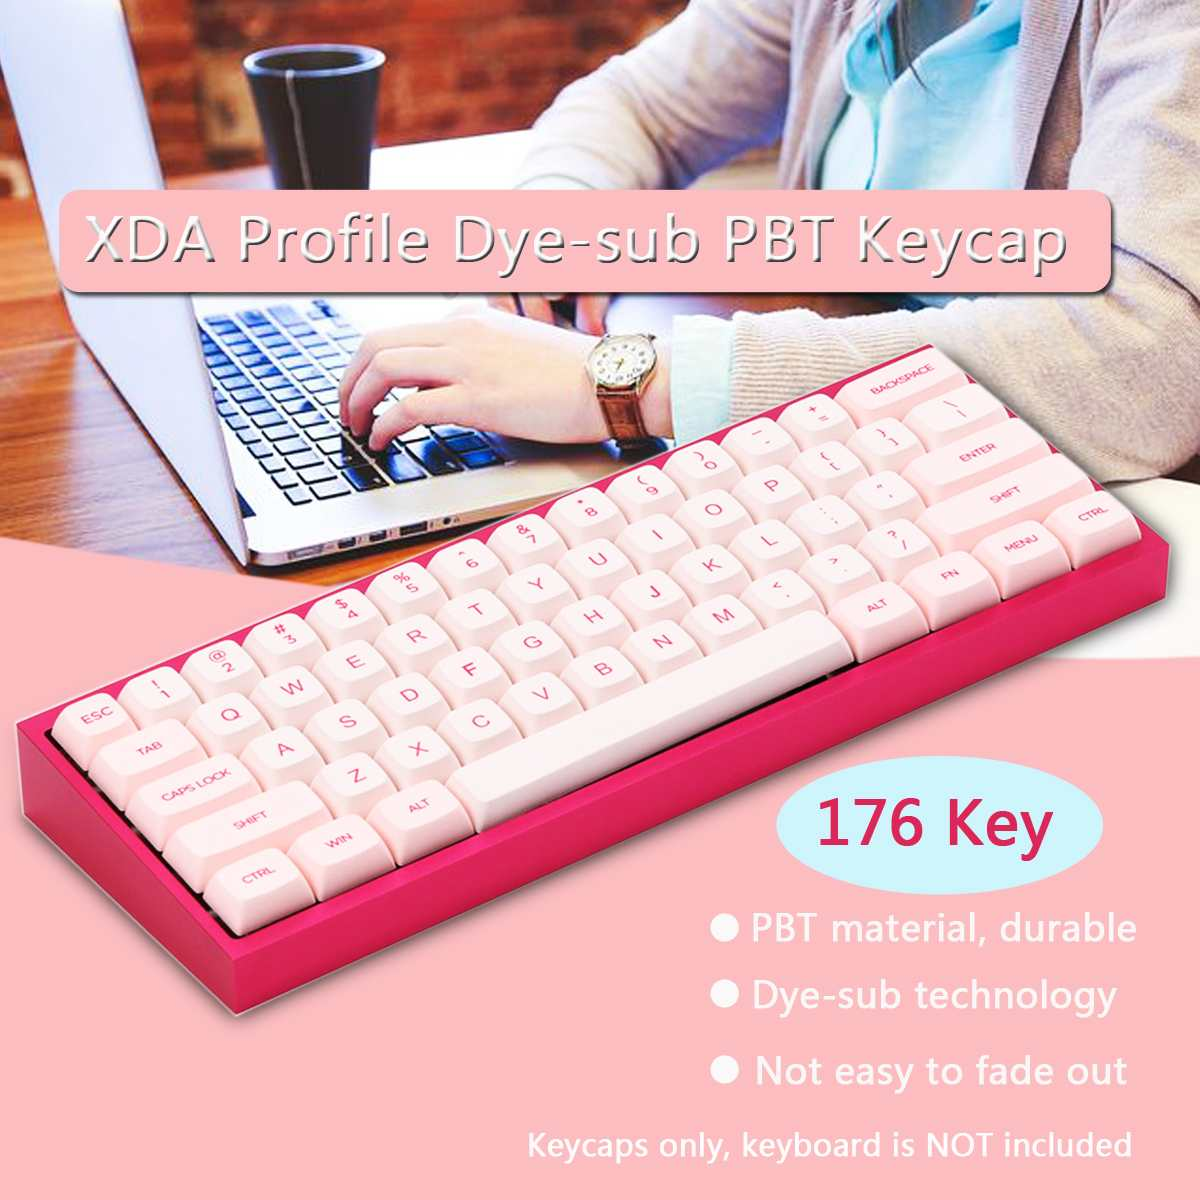 Pink 176 Key Xda Profile Dye-sub Pbt Keycaps Full Layout Keycap Set Mechanical Gaming Keyboard Keycaps Cute Keycap To Reduce Body Weight And Prolong Life